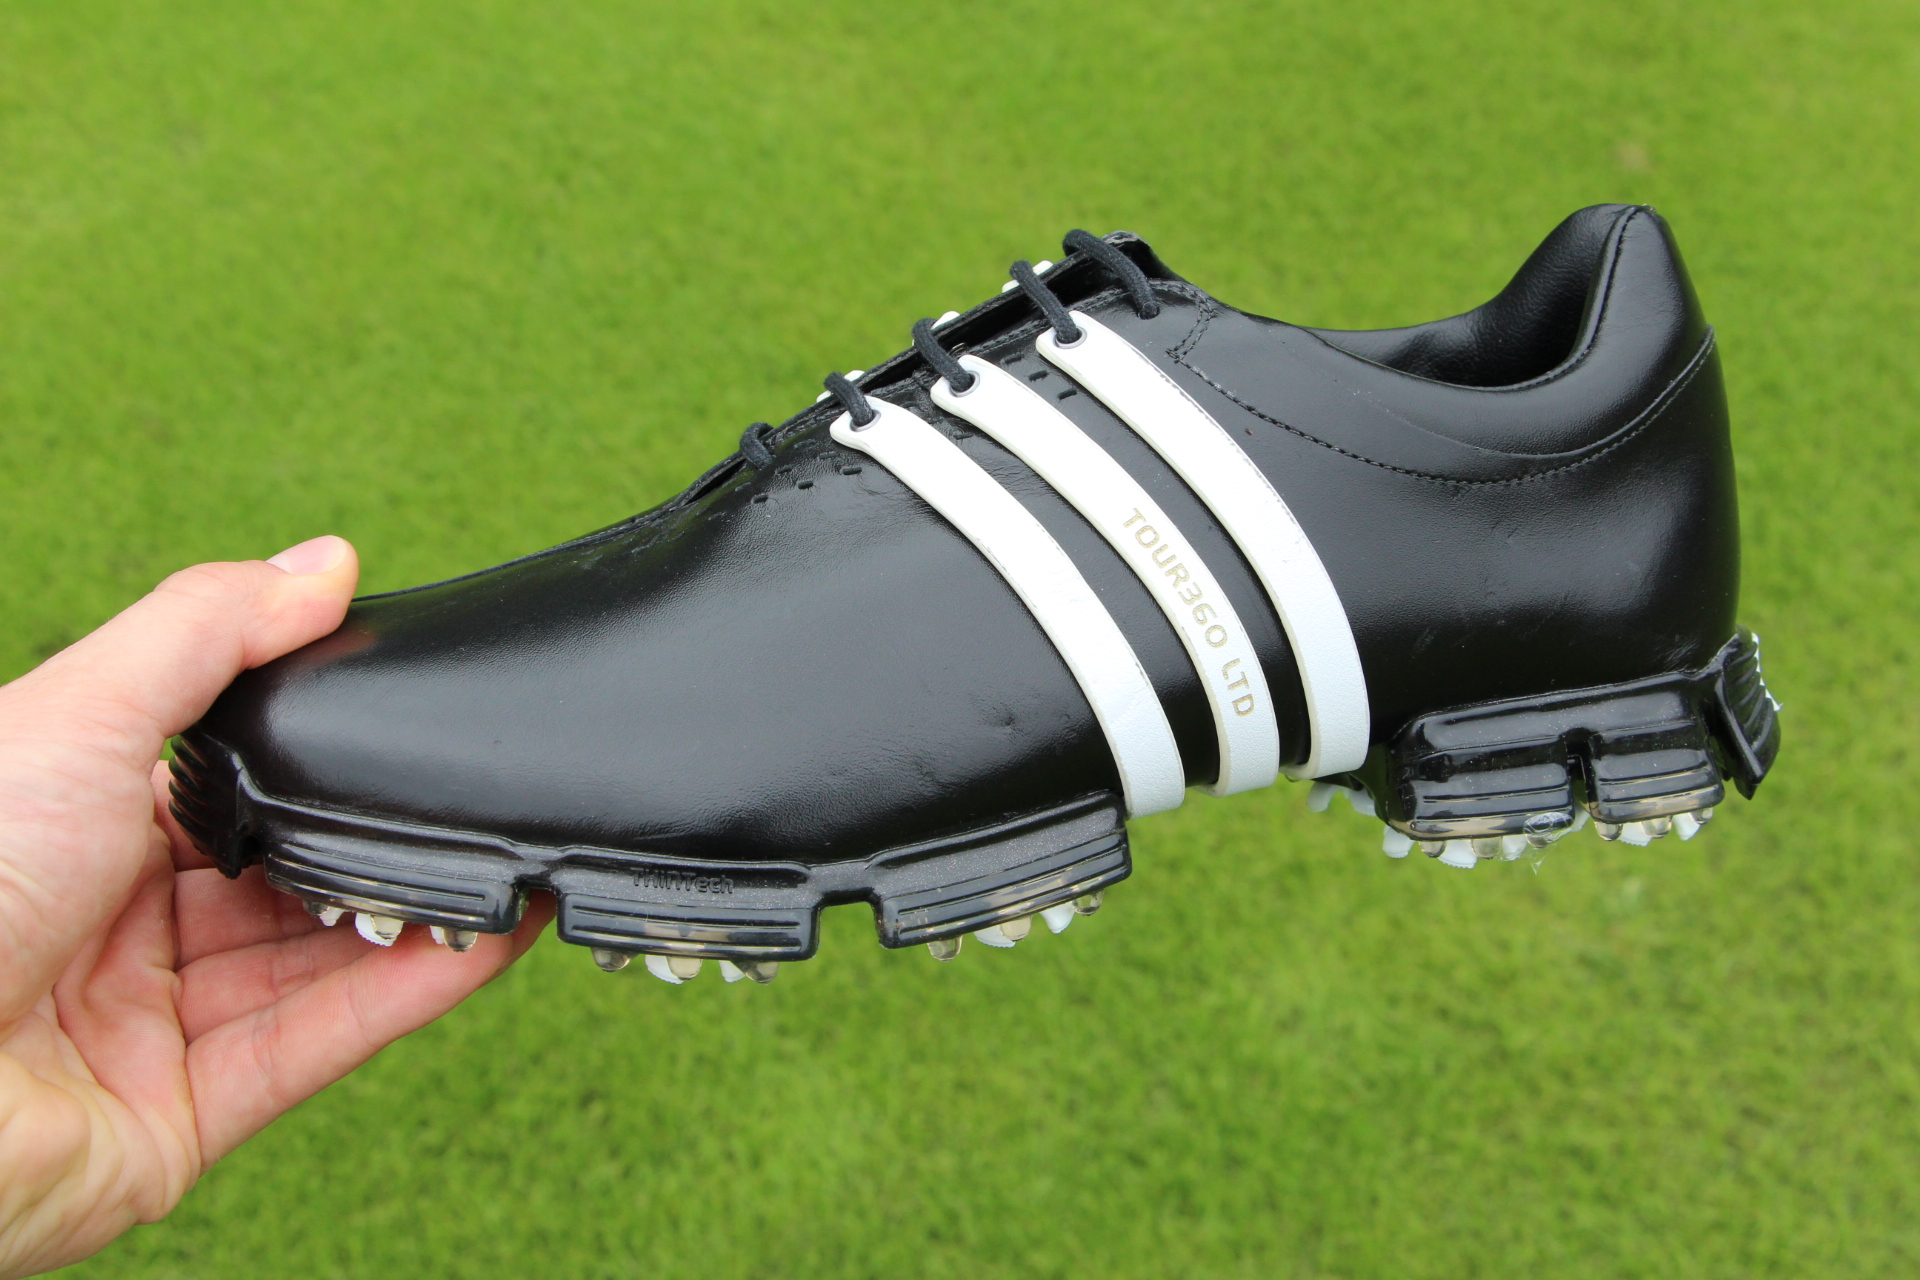 Adidas Tour360 Boost  The culmination of a decade of golf shoe ... 7effea5d4